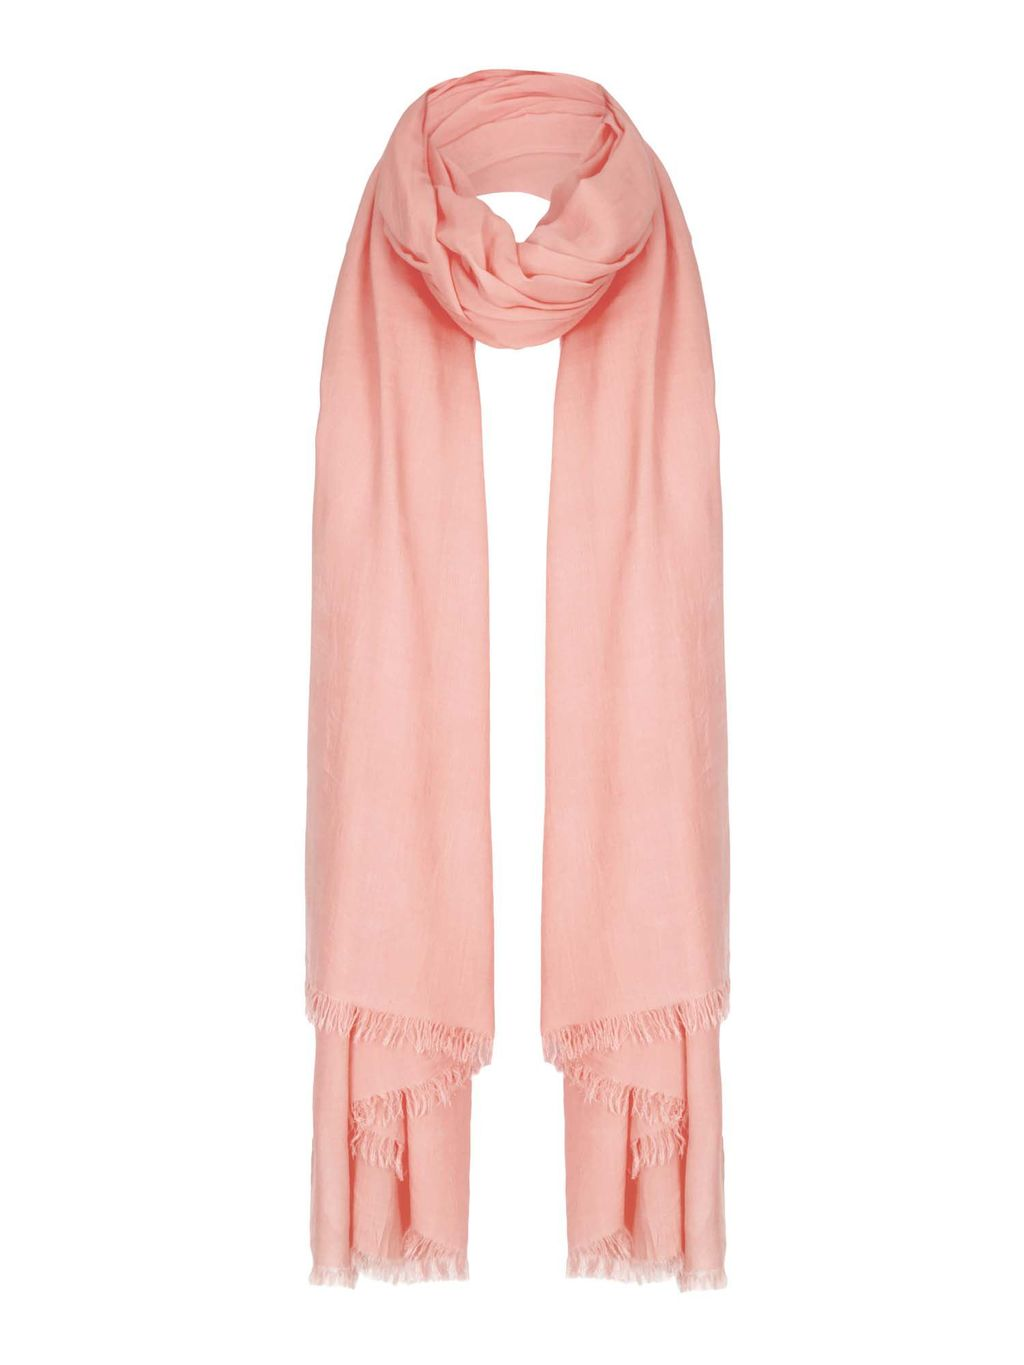 Pastel Scarf, Pink - predominant colour: pink; occasions: casual; type of pattern: standard; style: regular; size: standard; material: fabric; pattern: plain; season: s/s 2016